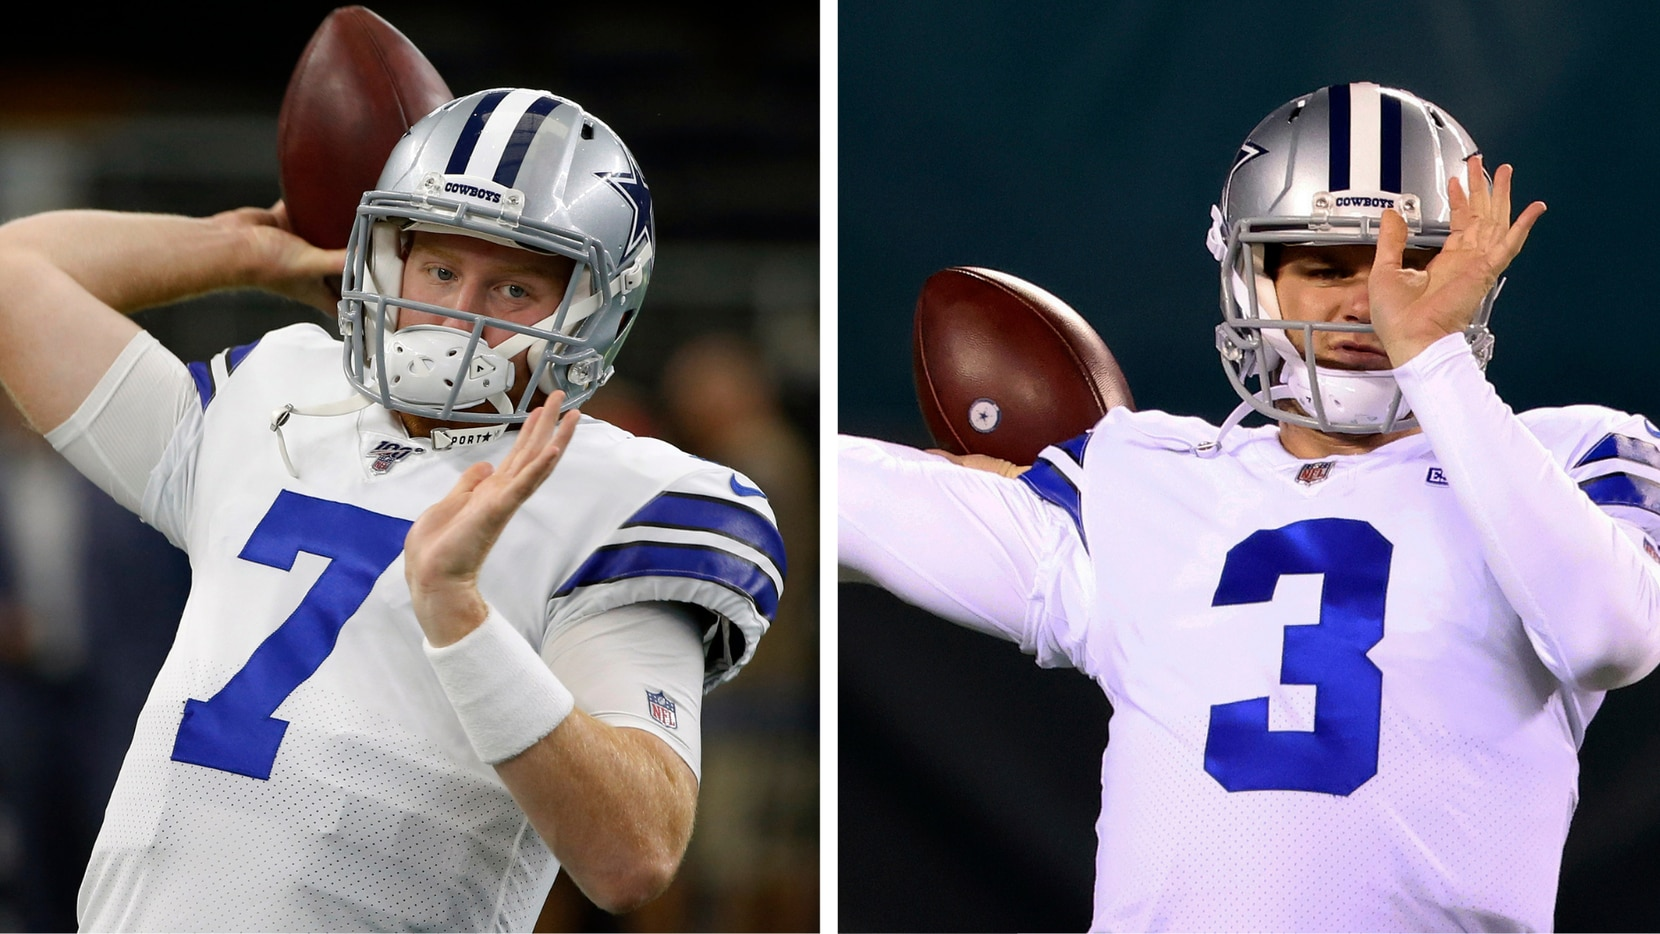 Coach Mike McCarthy said Wednesday he was benching rookie Ben DiNucci in favor of either Garrett Gilbert or Cooper Rush. Gilbert and Rush will compete for the job in practice, and one will start Sunday at home against the Steelers (7-0). (Photo credit: AP Photo/Ron Jenkins, left; AP Photo/Rich Schultz, right)